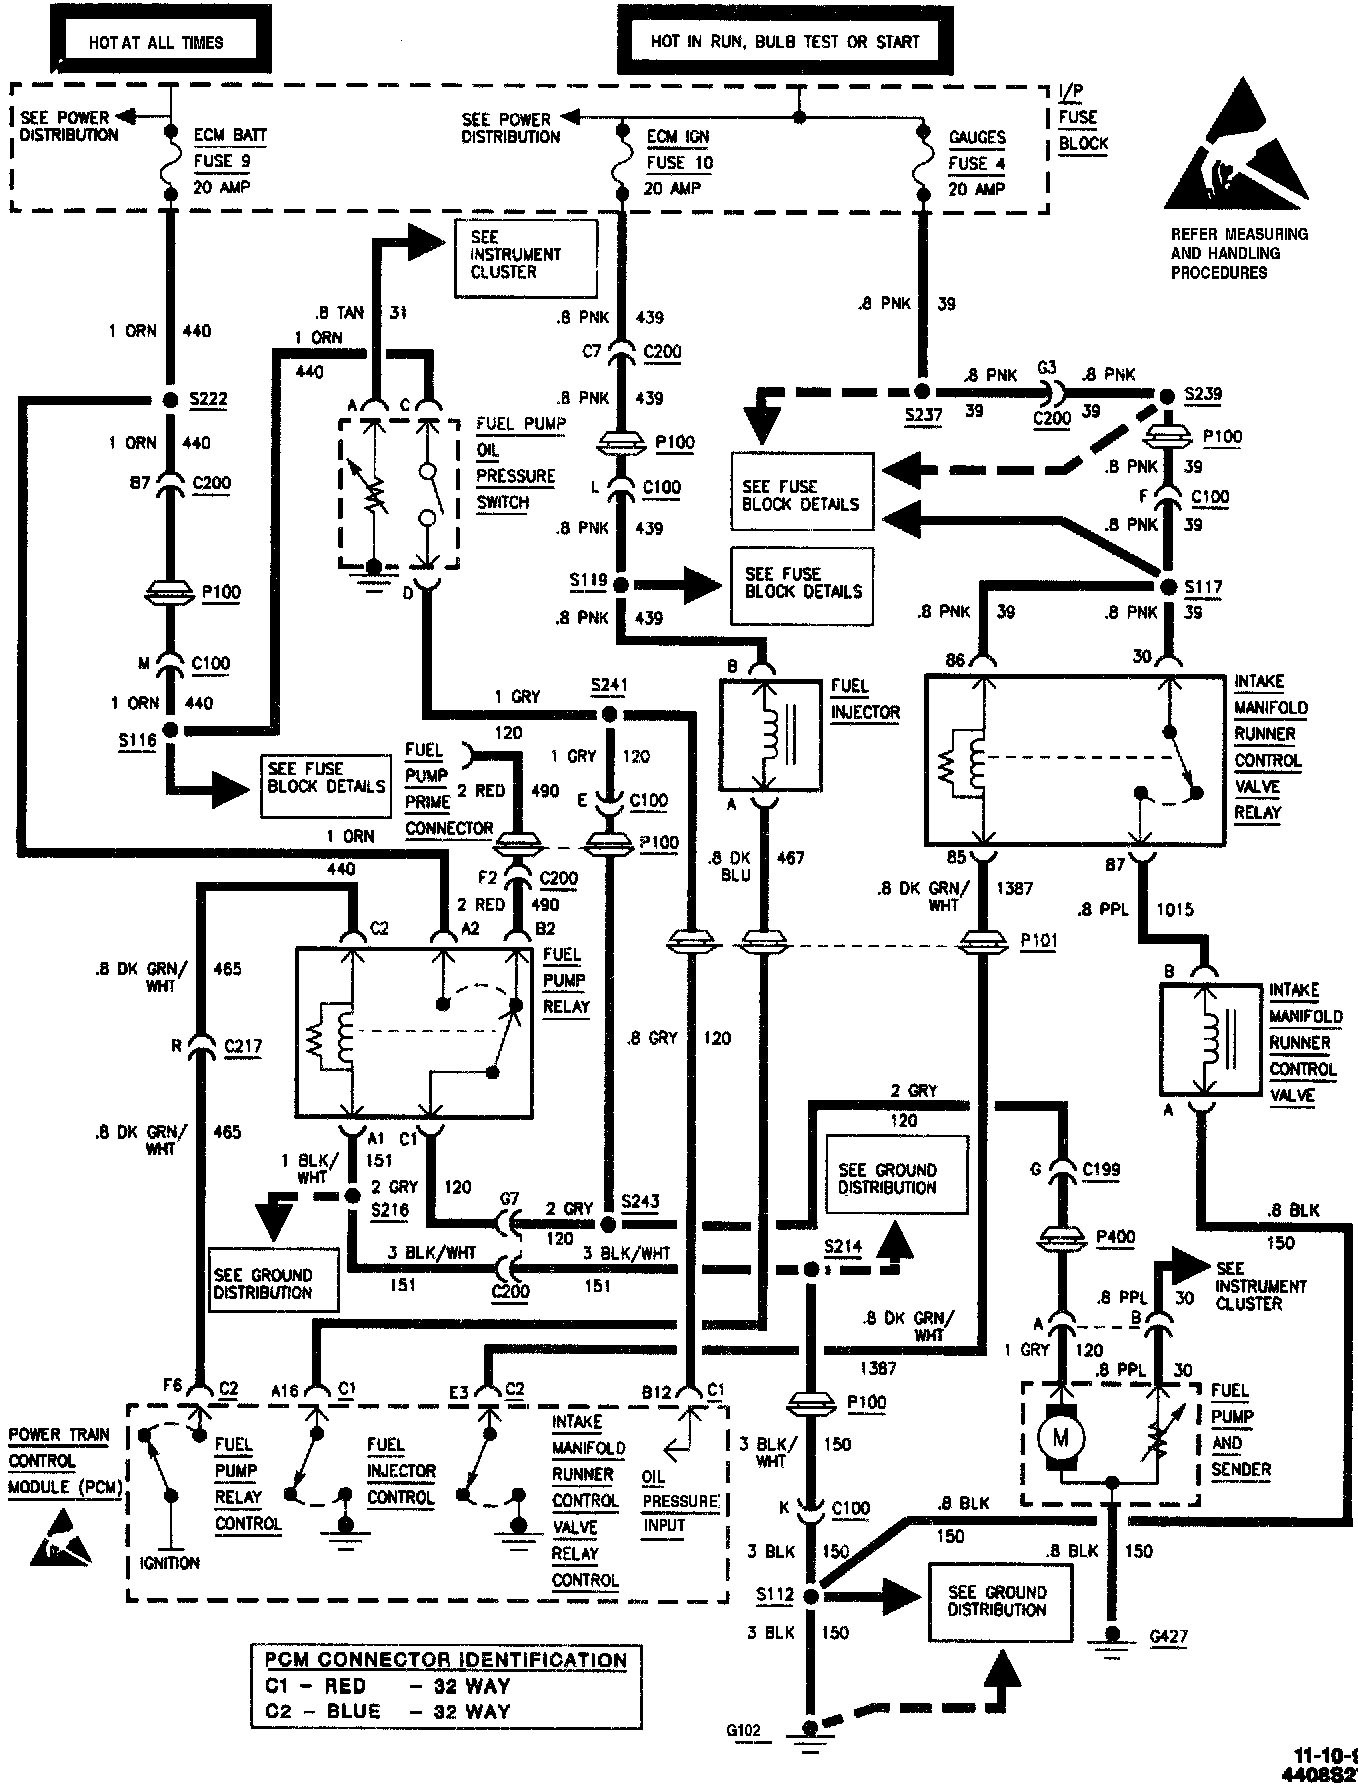 Wiring diagram 1998 chevy pickup 1997 chevrolet express 3500 fuse diagram at ww w